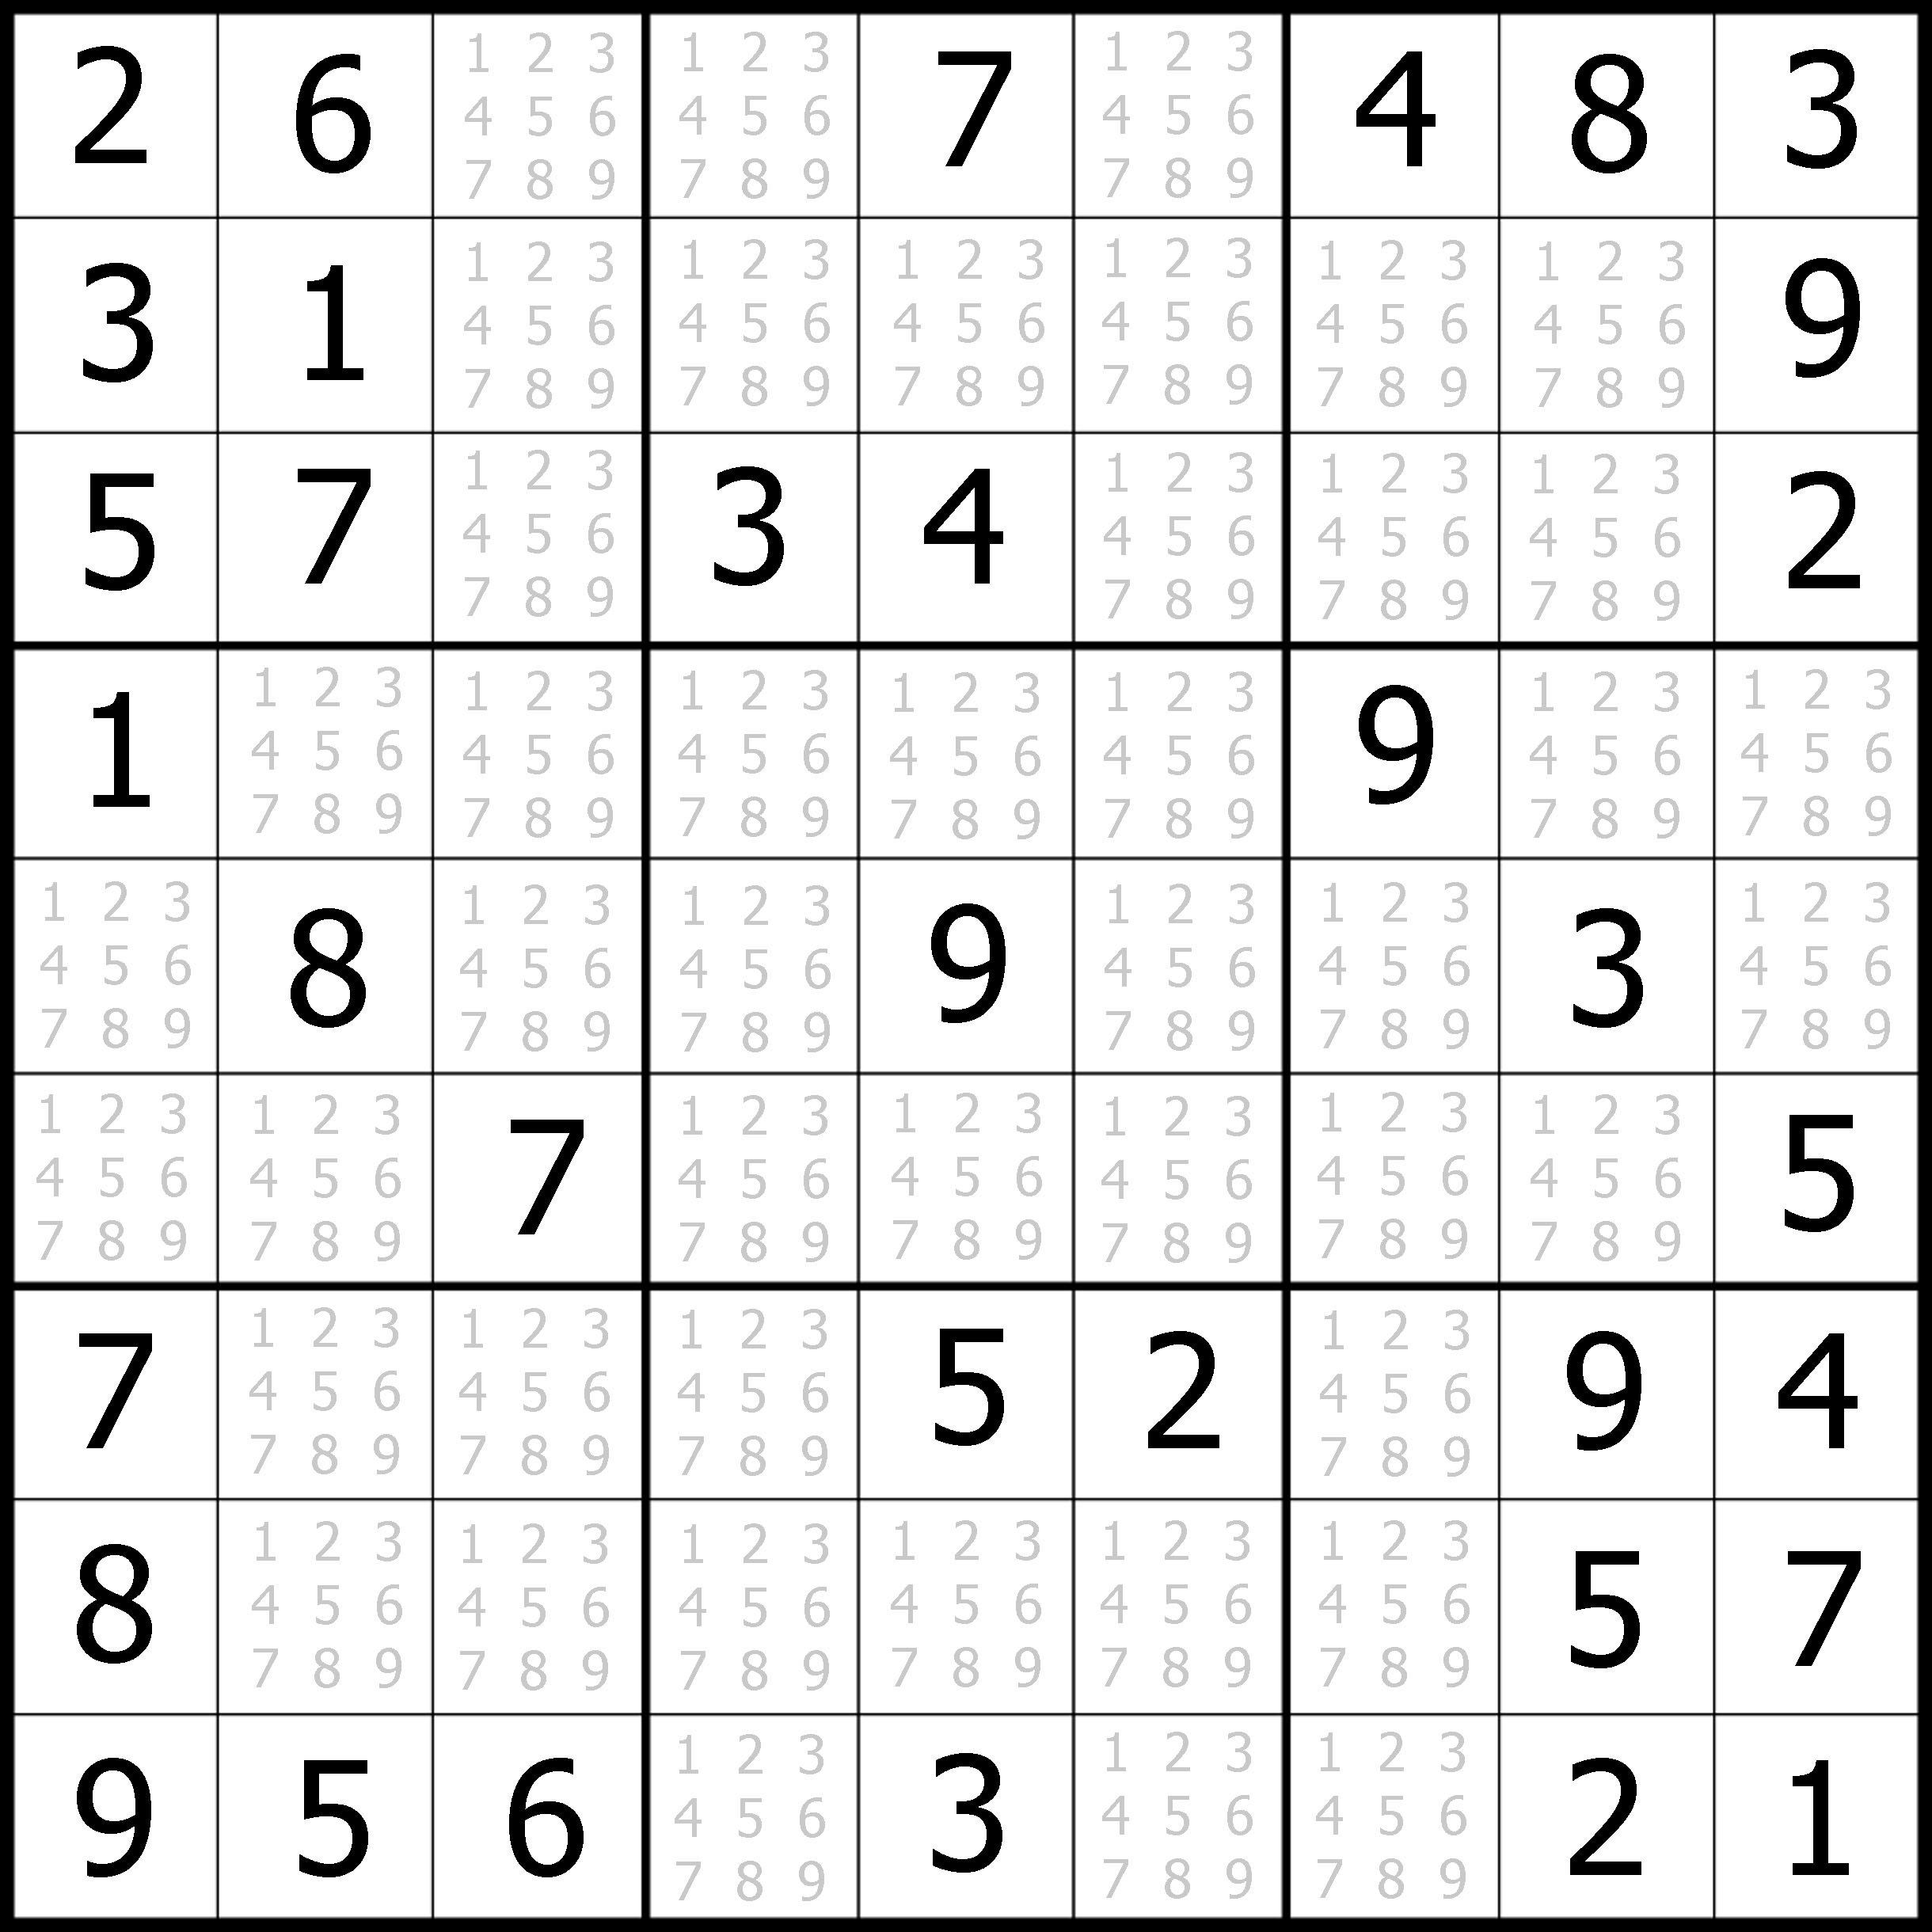 Sudoku Puzzler | Free, Printable, Updated Sudoku Puzzles With A - Printable Puzzle Sudoku